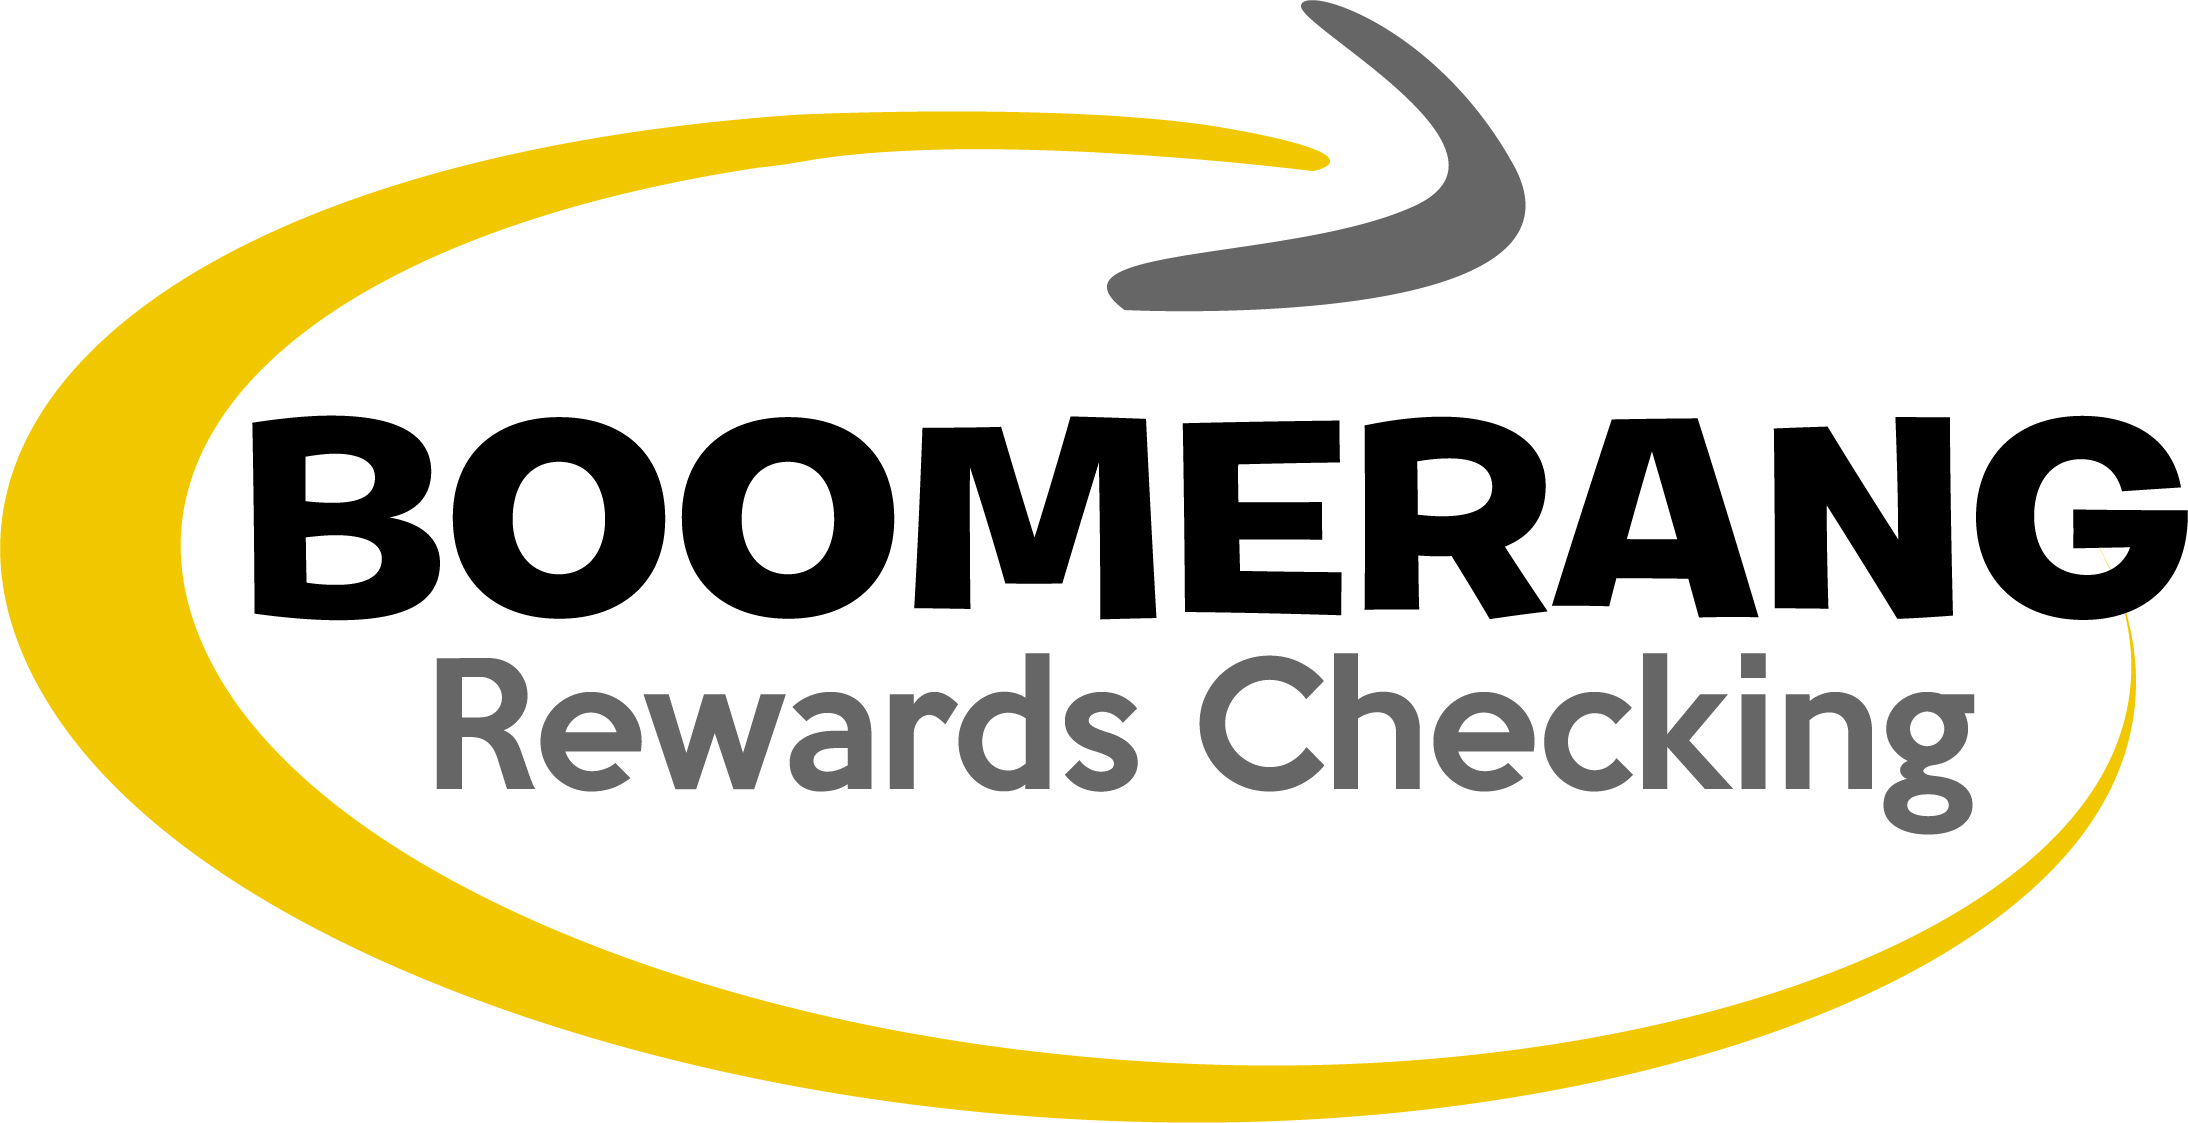 Boomerang rewards checking logo